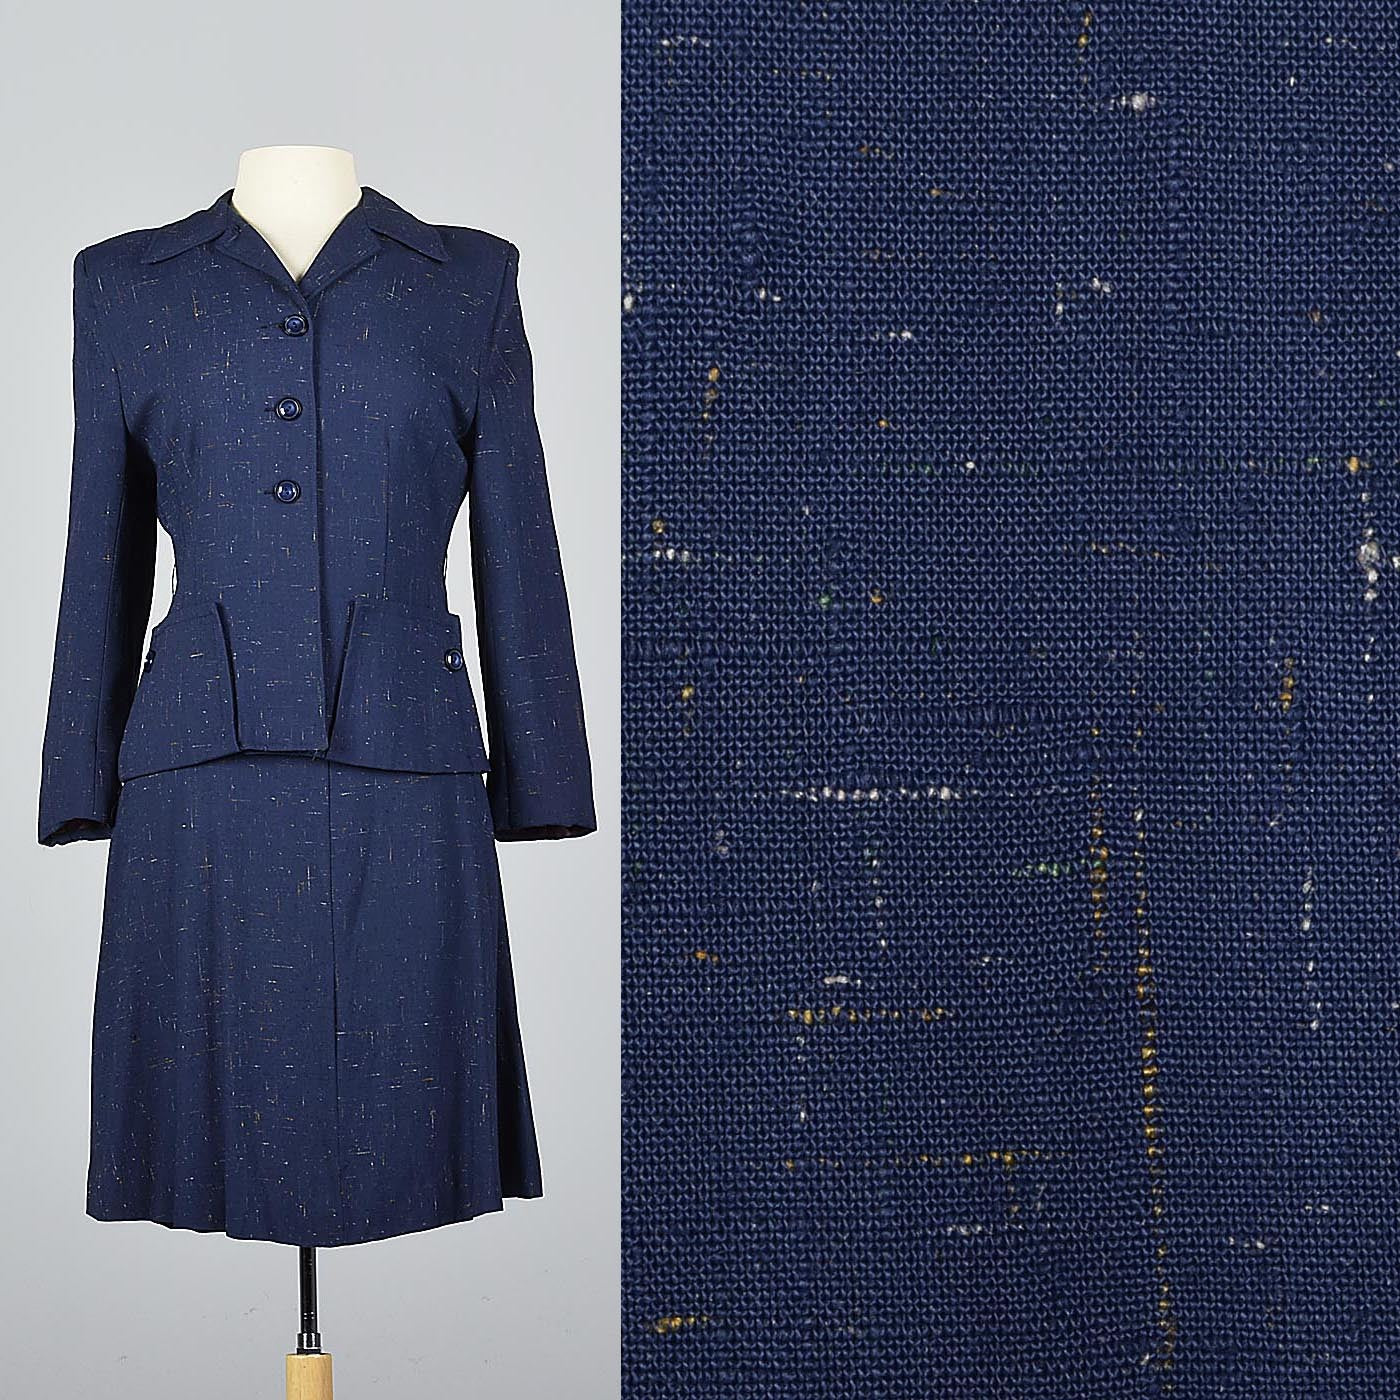 1940s Skirt Suit in Flecked Navy Fabric